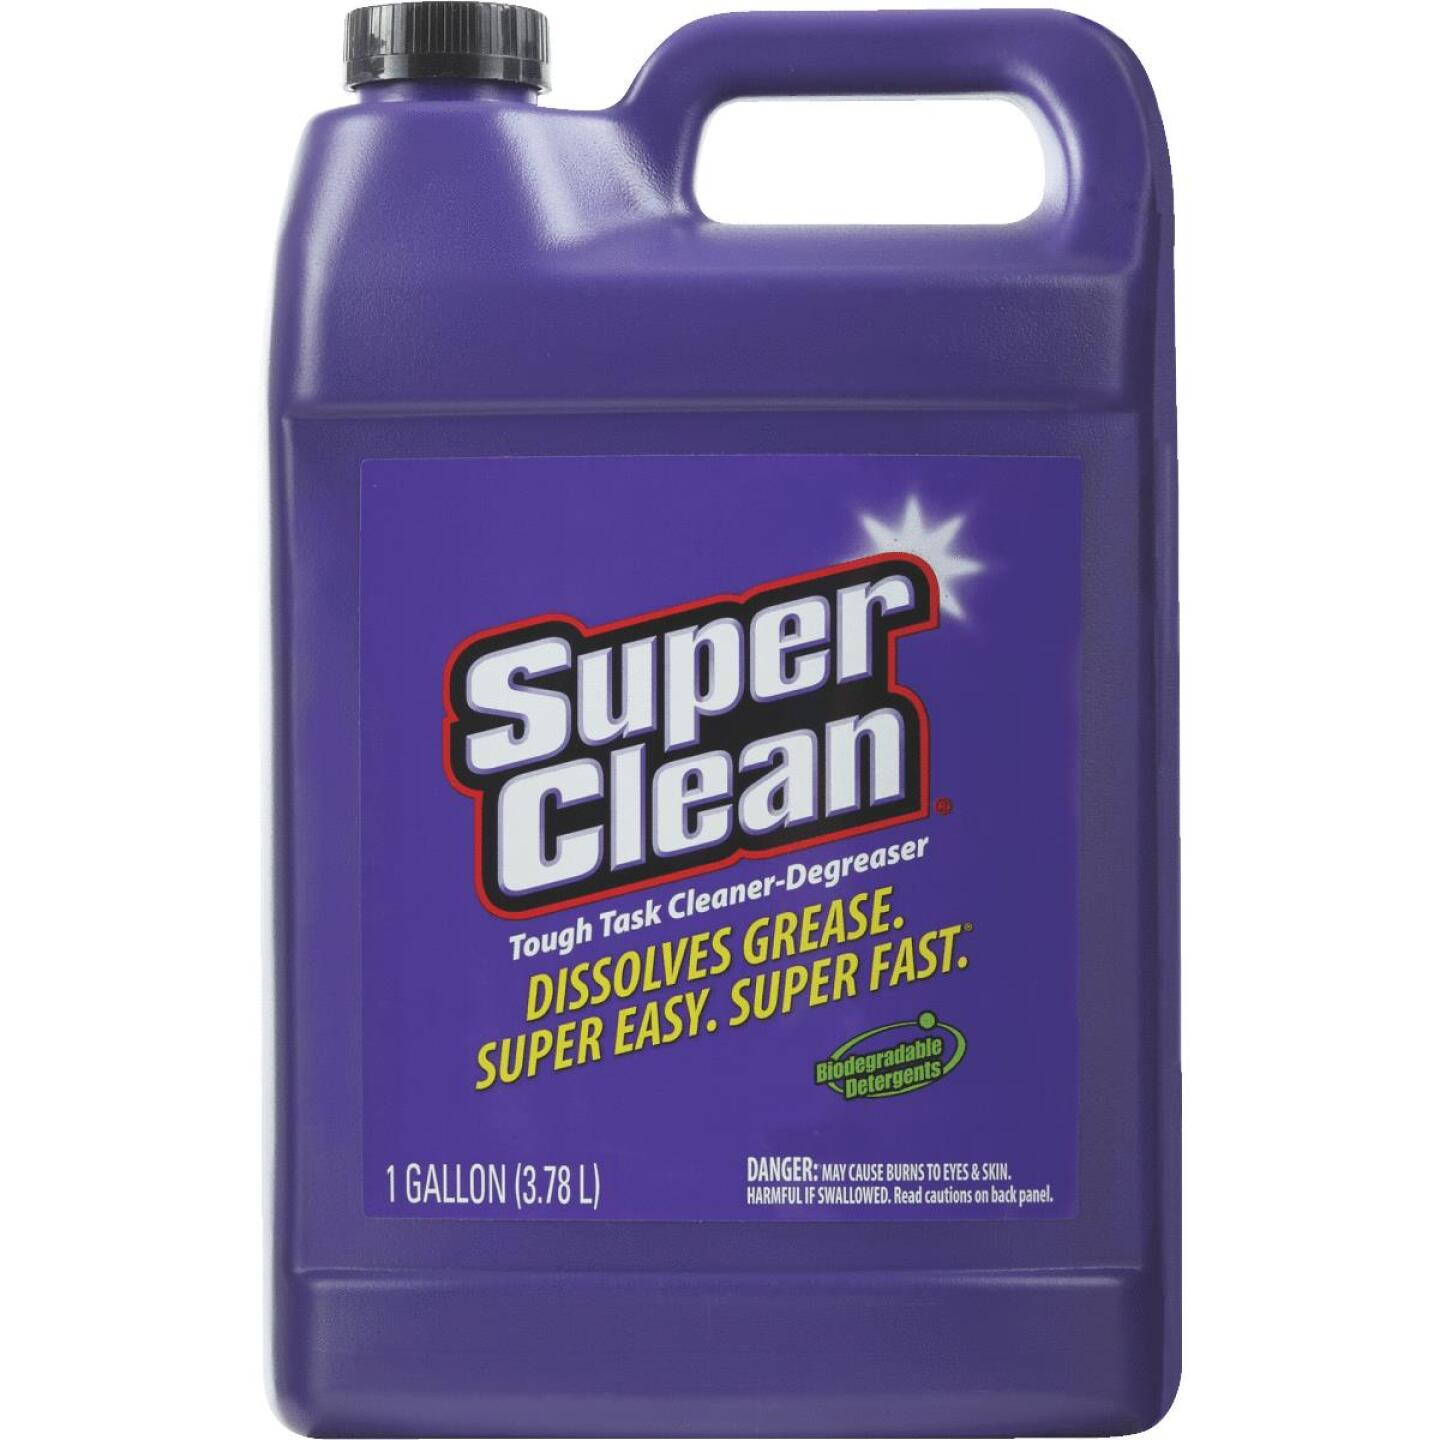 SuperClean 1 Gallon Liquid Cleaner & Degreaser Image 1